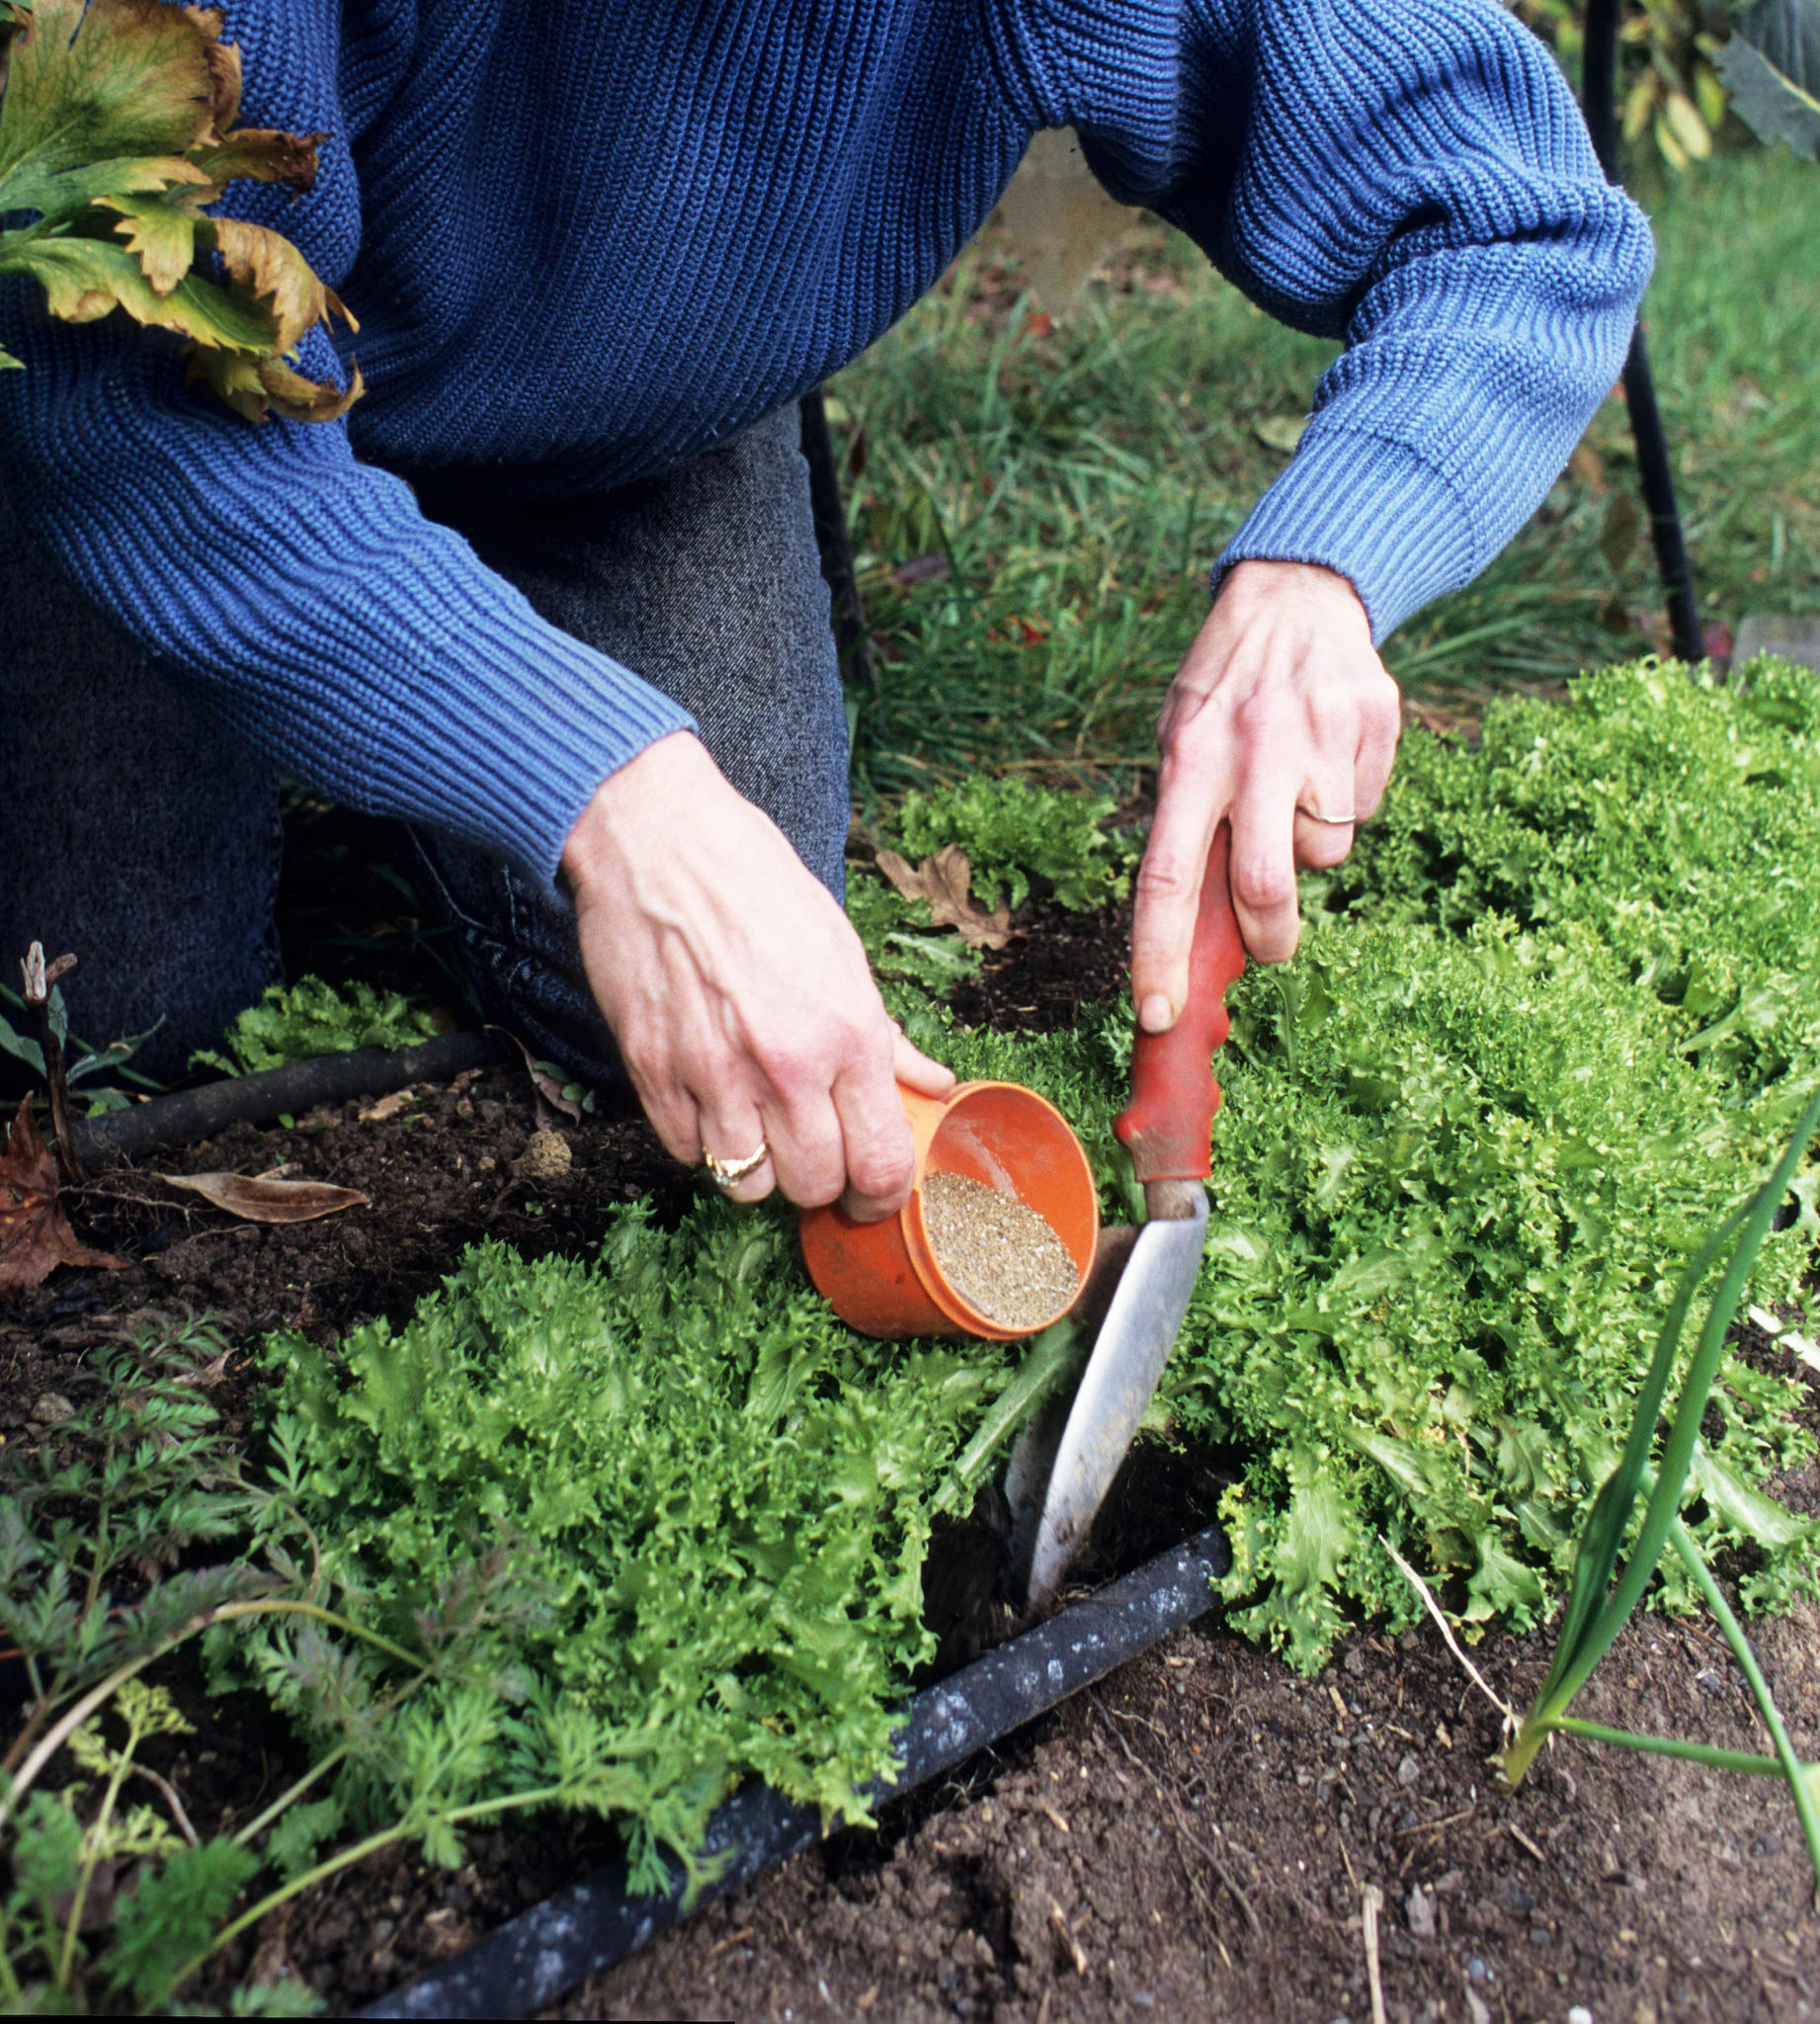 Know what your plants need before fertilizing